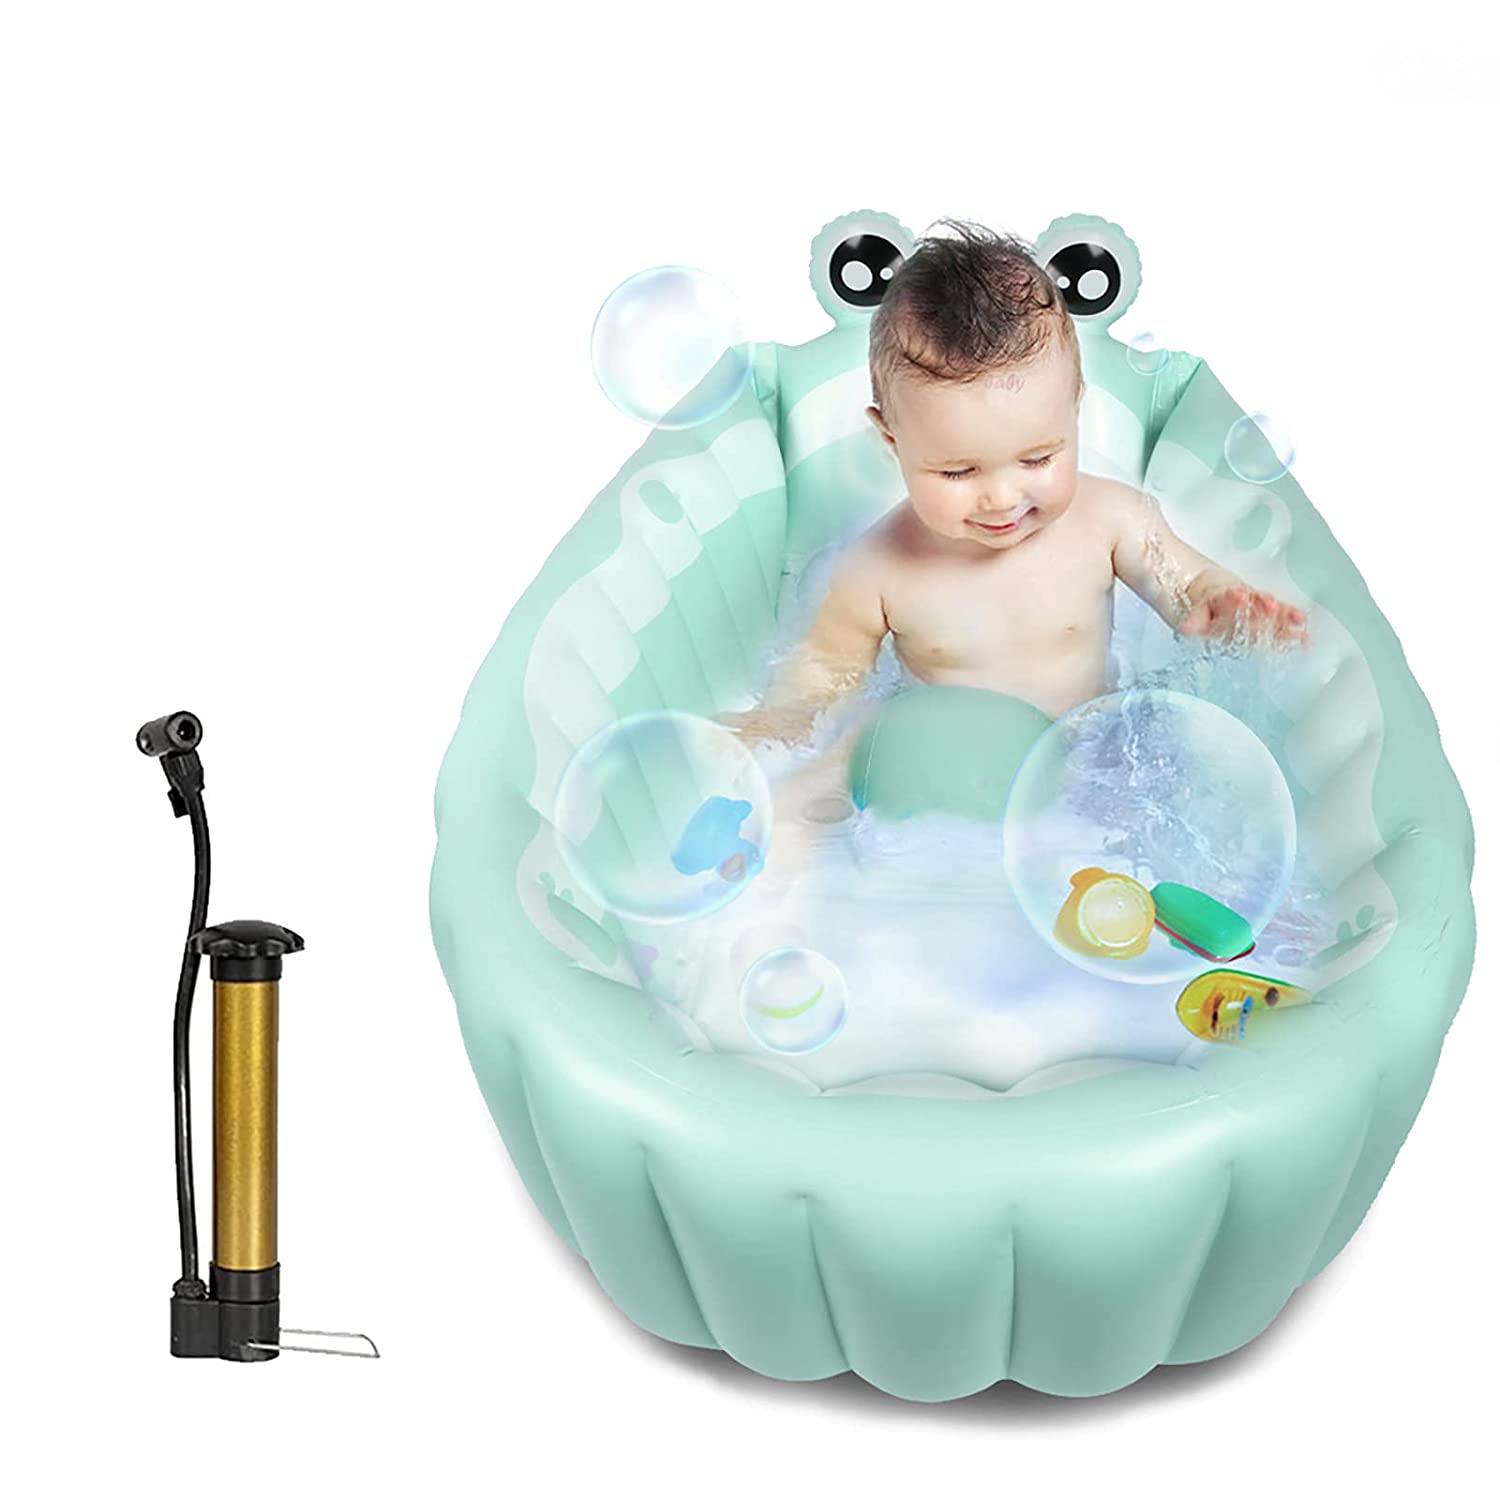 Free shipping on posting reviews Inflatable Baby Bathtub Portable Infant Tub T Toddler Japan Maker New Bath